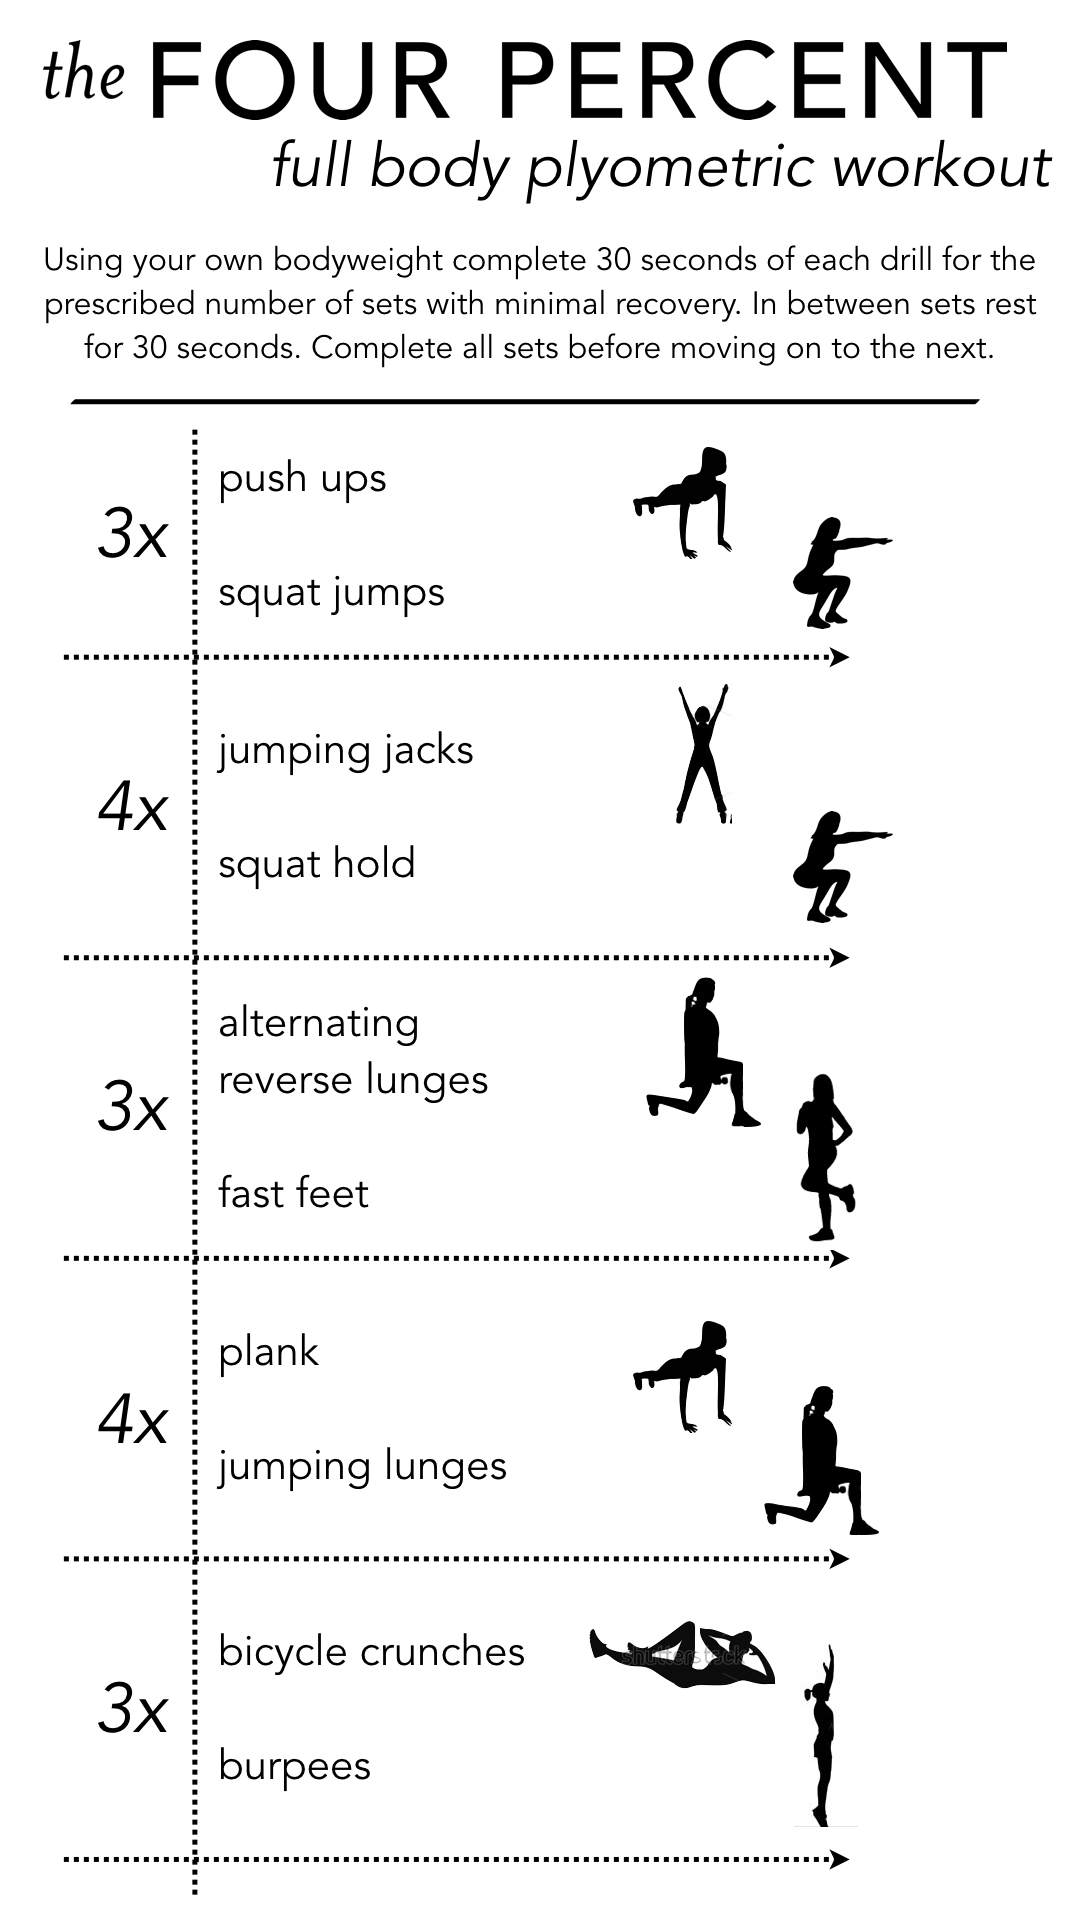 full-body-plyometric-workout